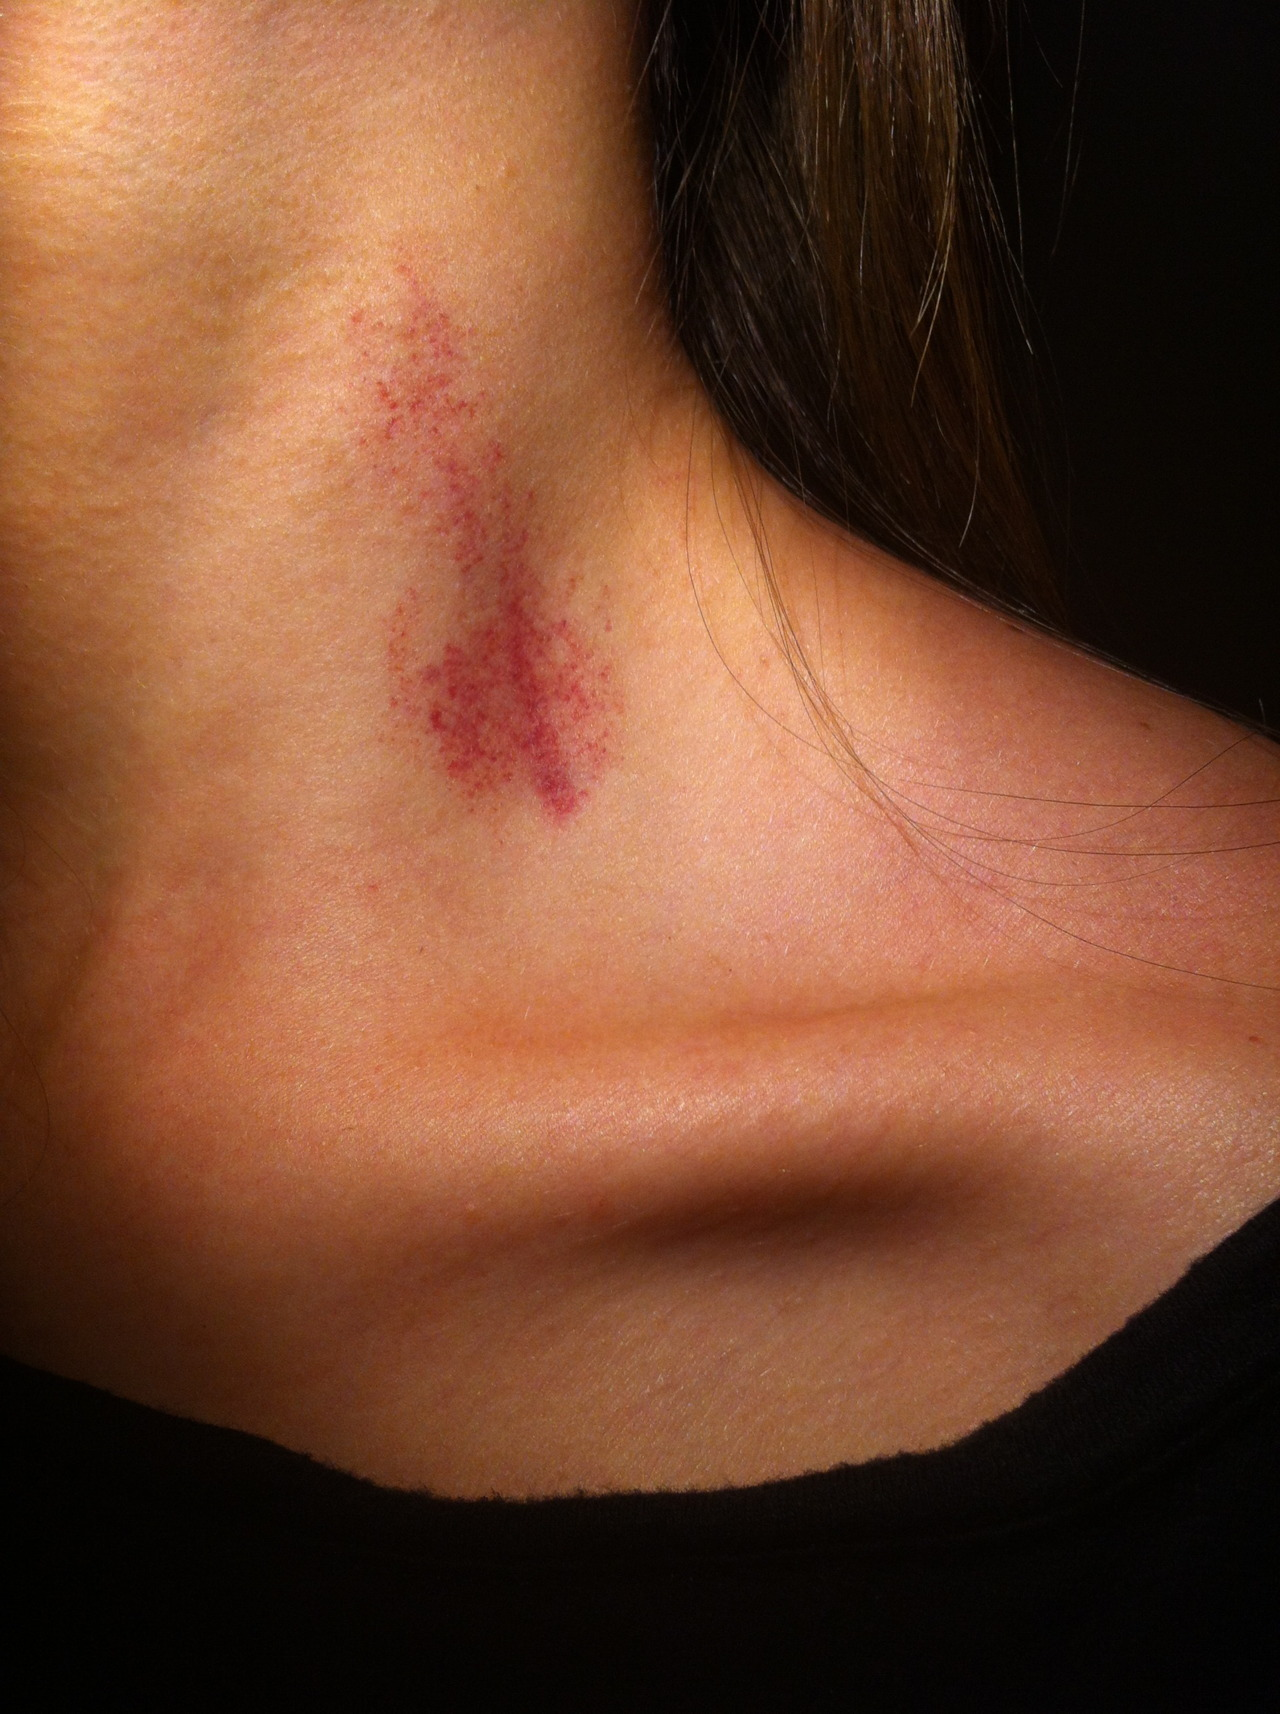 iknowuknowweknow:  If my boyfriend does me a hickey ill fkin beat him up, it looks so gross